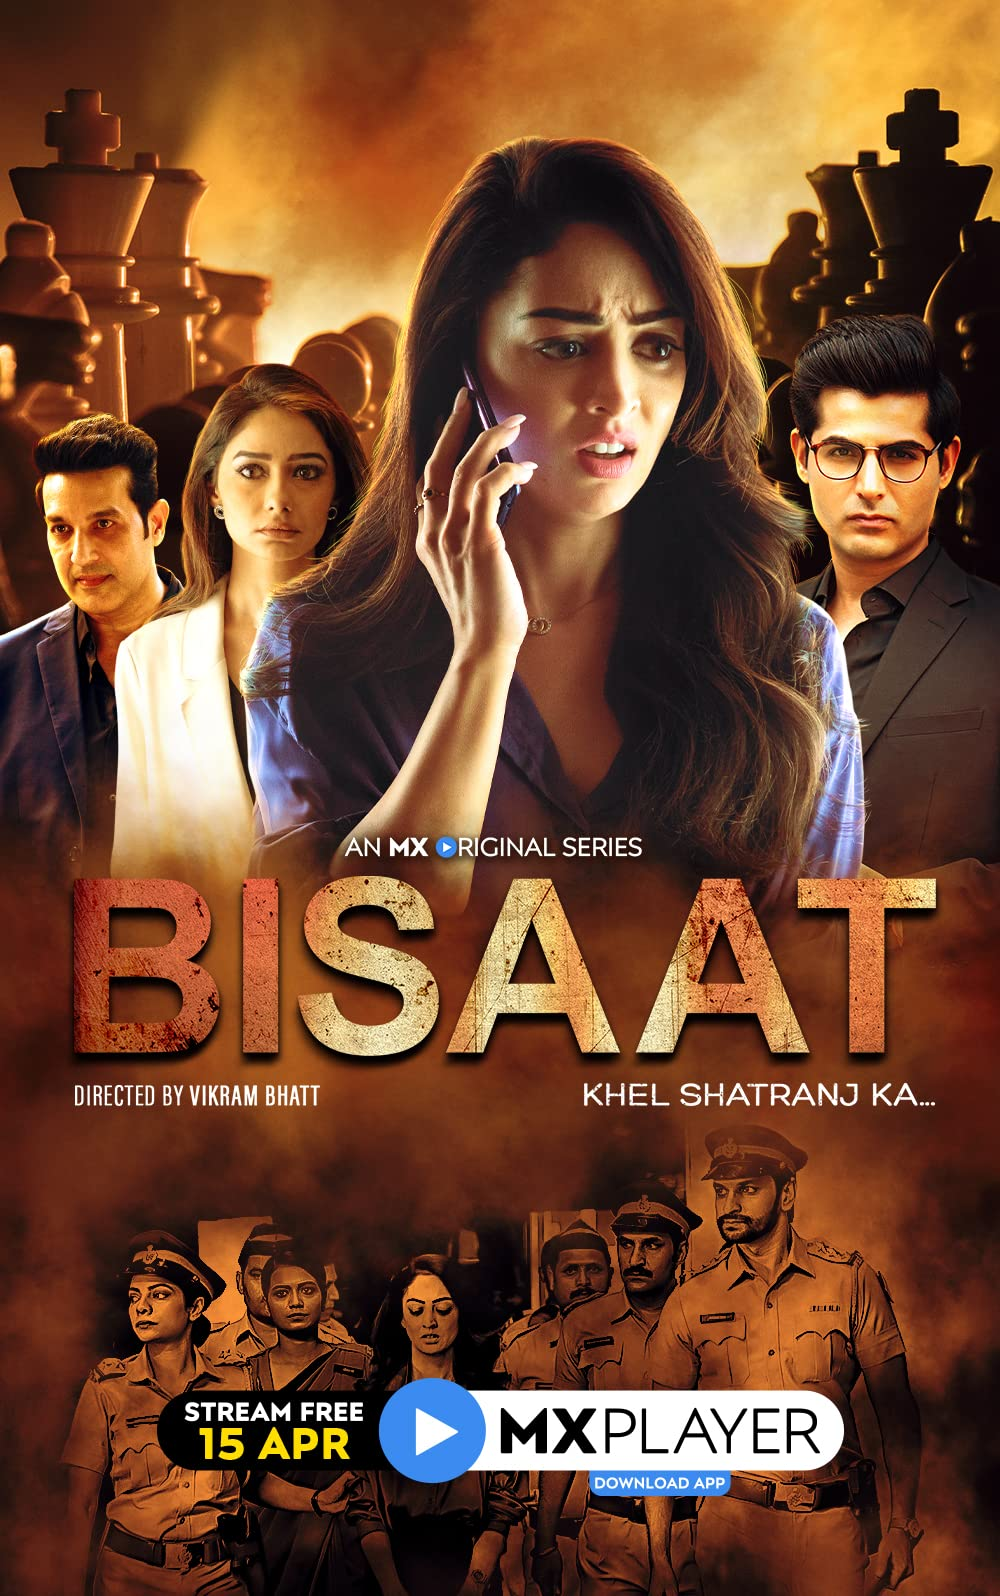 Bisaat: Khel Shatranj Ka 2021 S01 Hindi MX Original Complete Web Series 700MB HDRip 480p Download